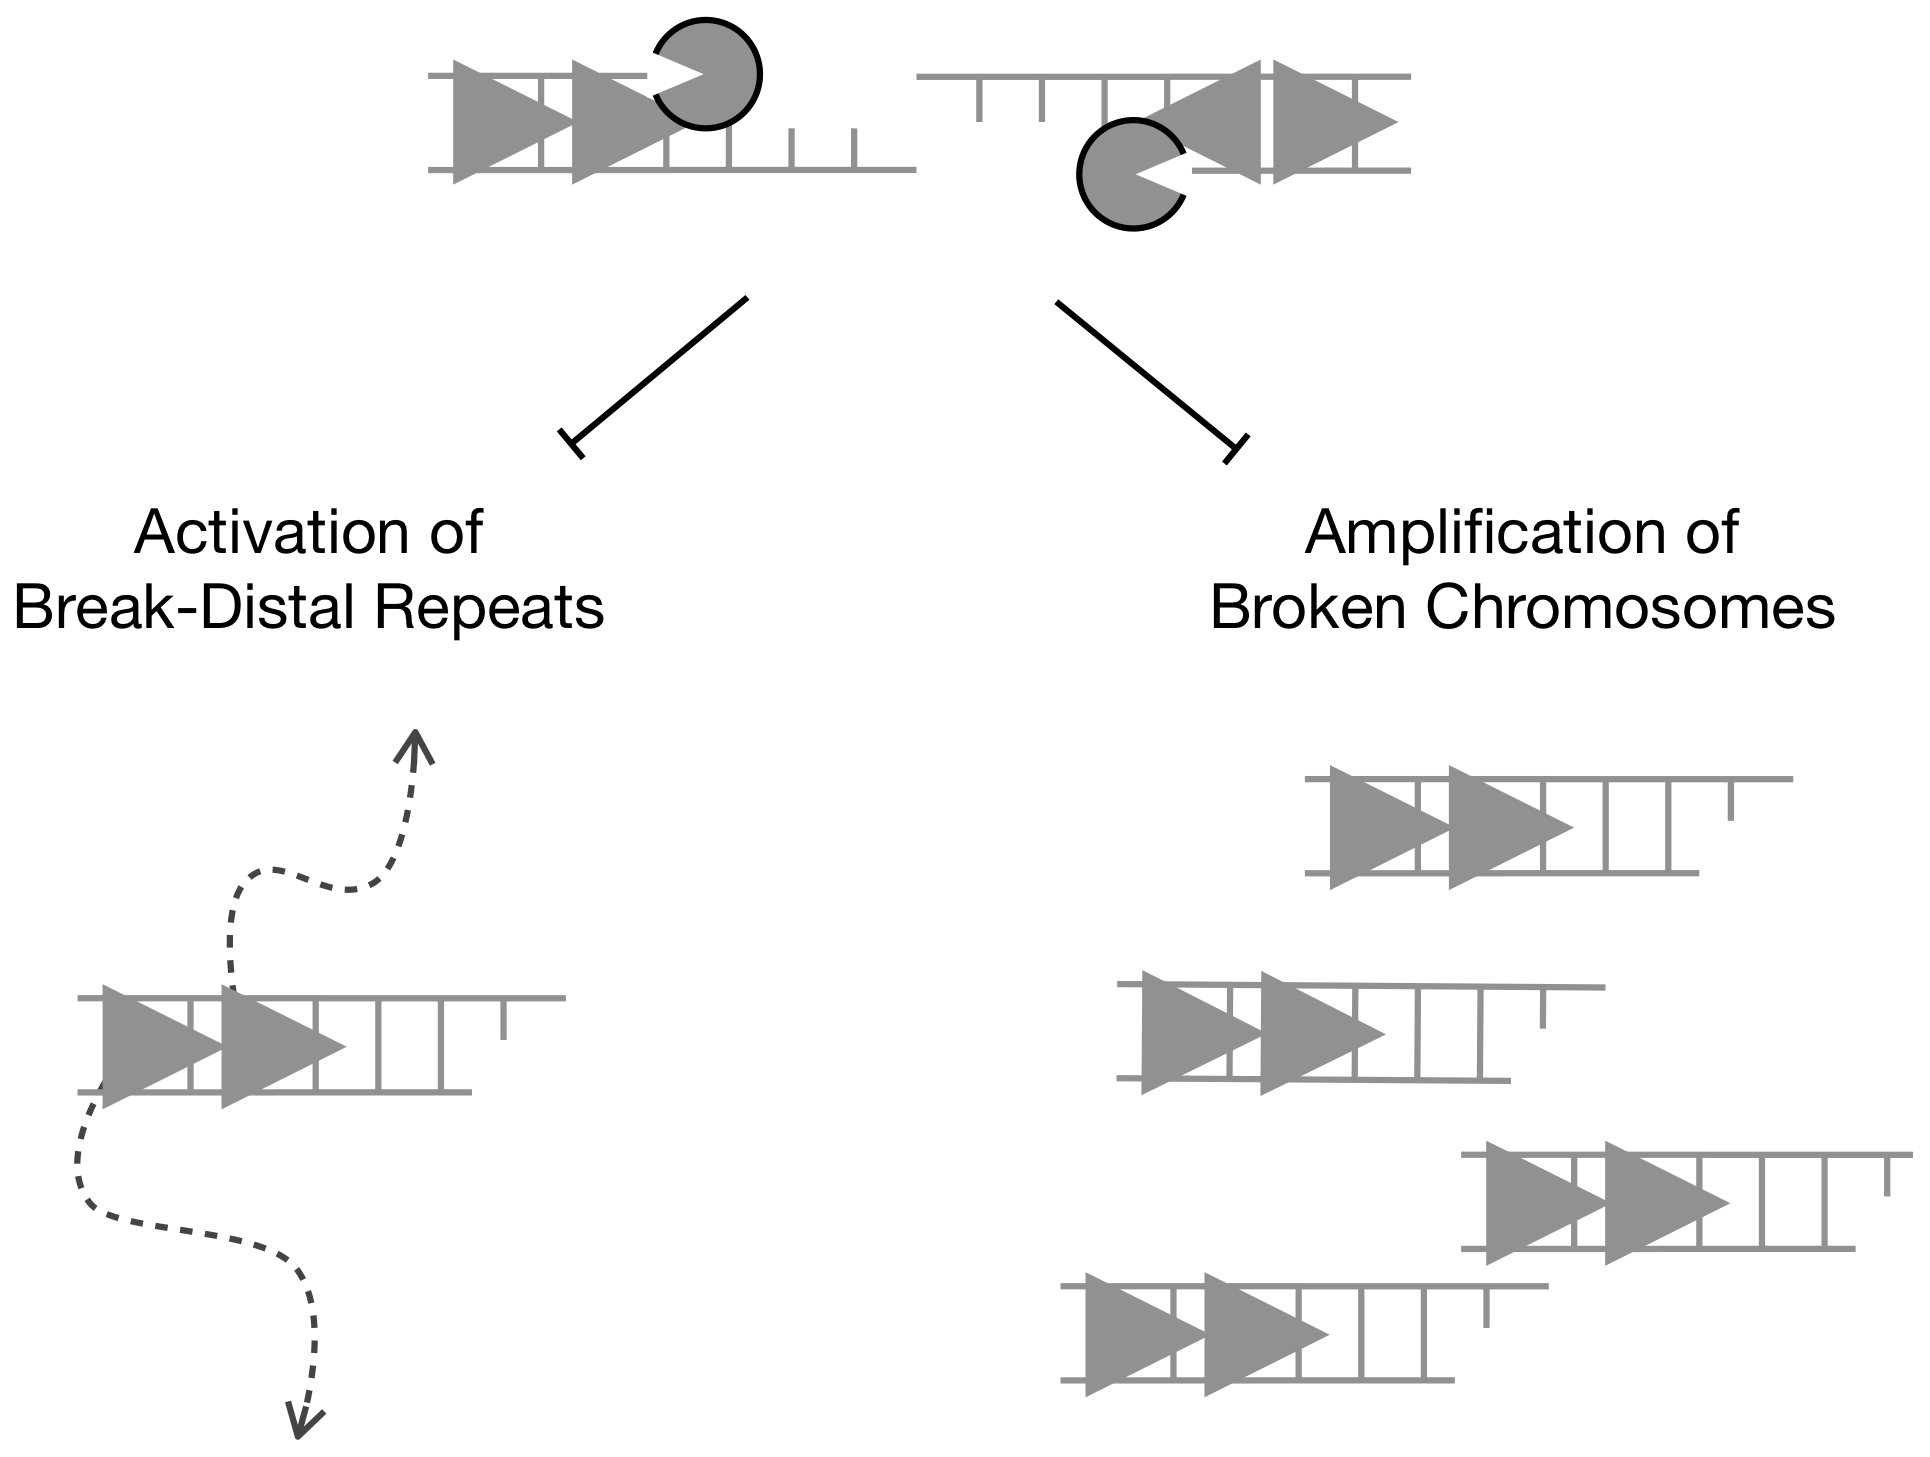 Long-range DNA resection at chromosome breaks promotes genome stability by constraining non-allelic homologous recombination between natural repeats.